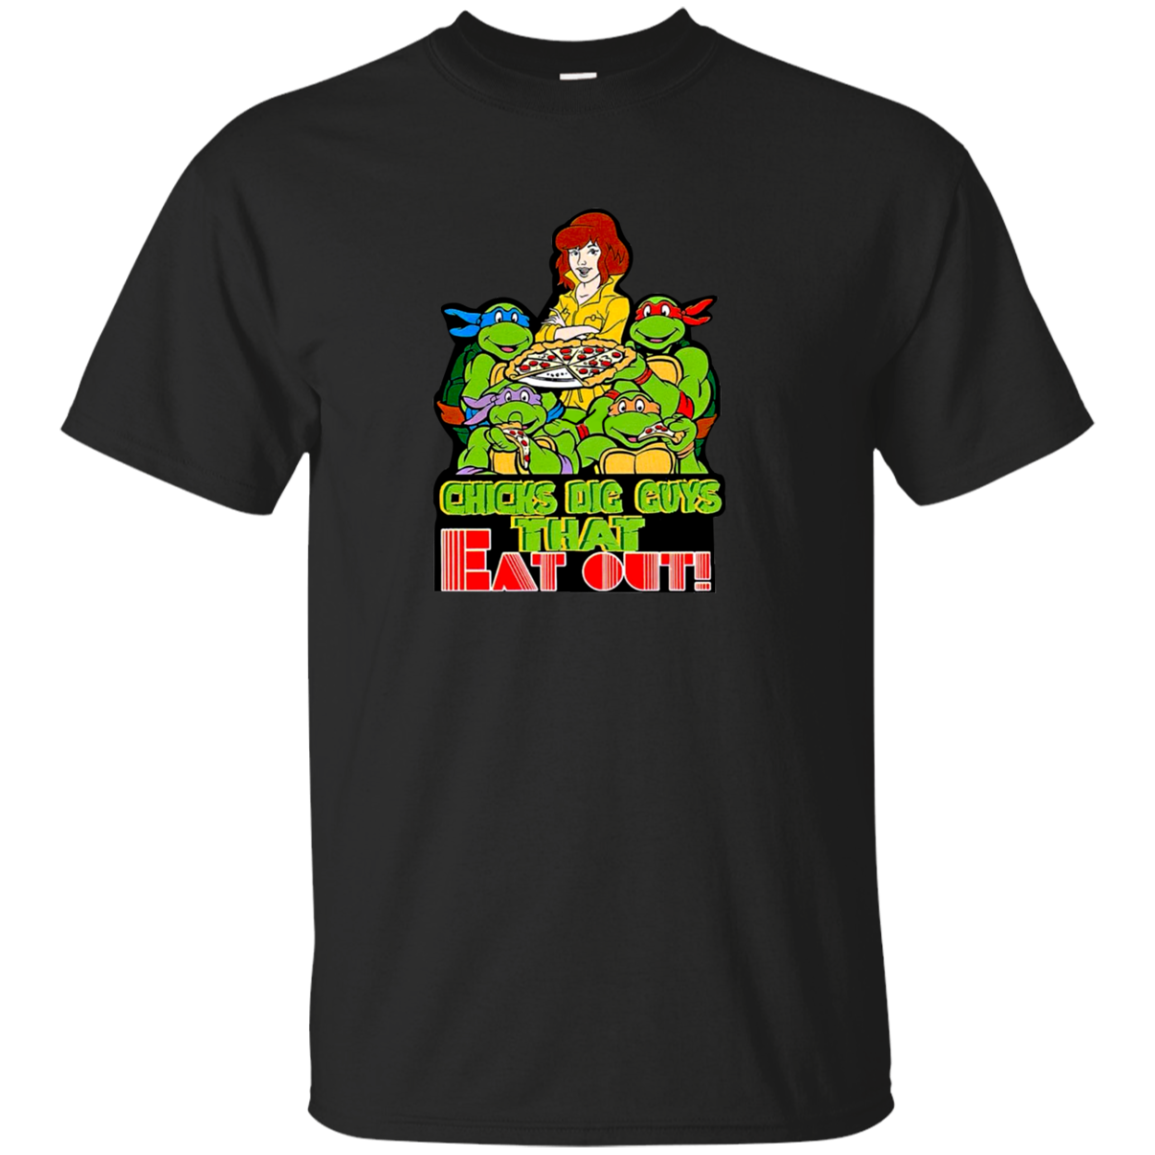 Chicks dig gus that eat out tshirt